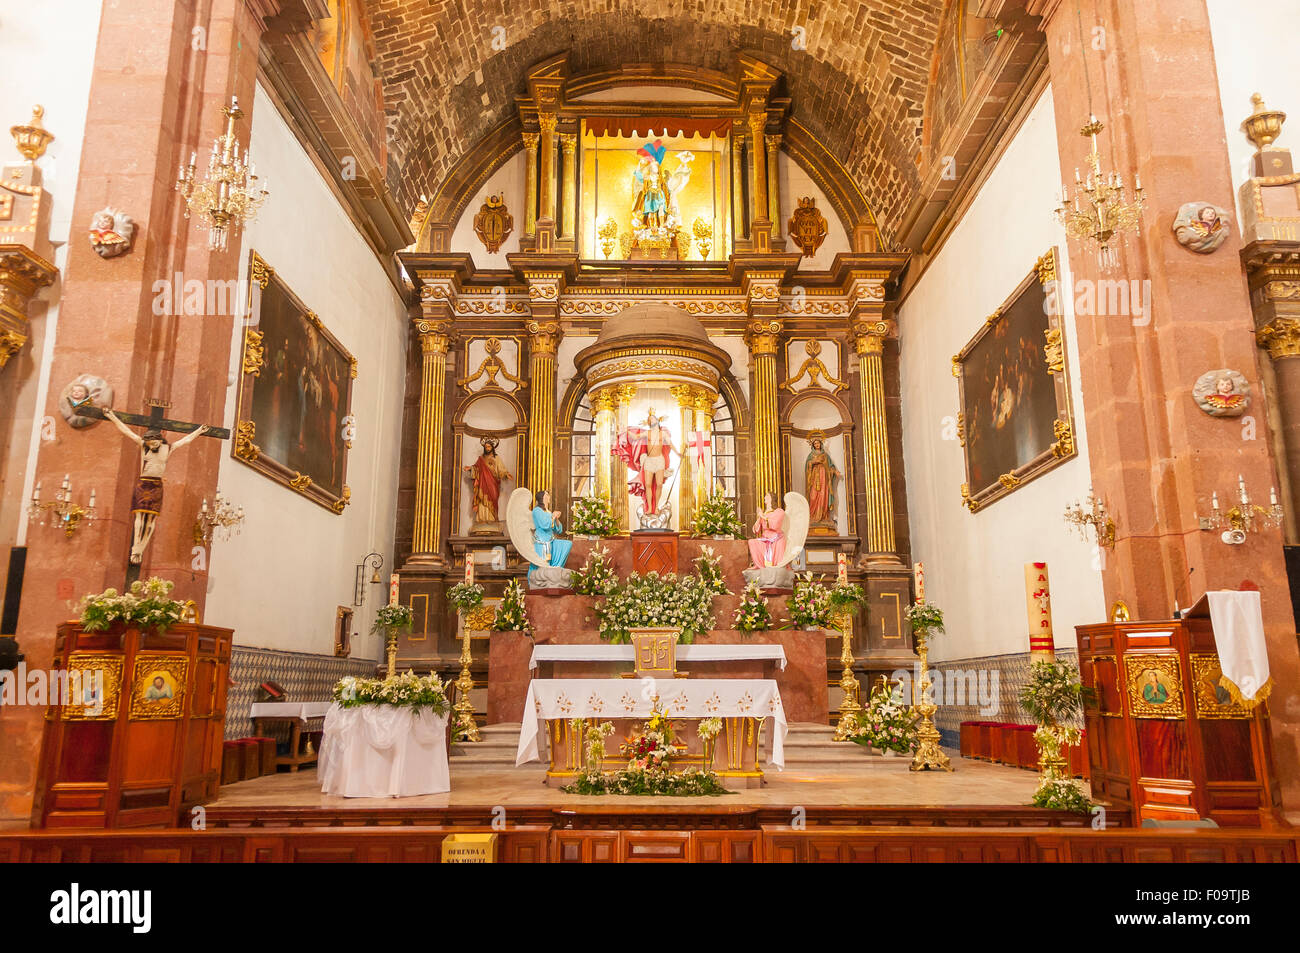 The Altar, Parroquia de San Miguel Arcangel, San Miguel de Allende, Mexico Stock Photo